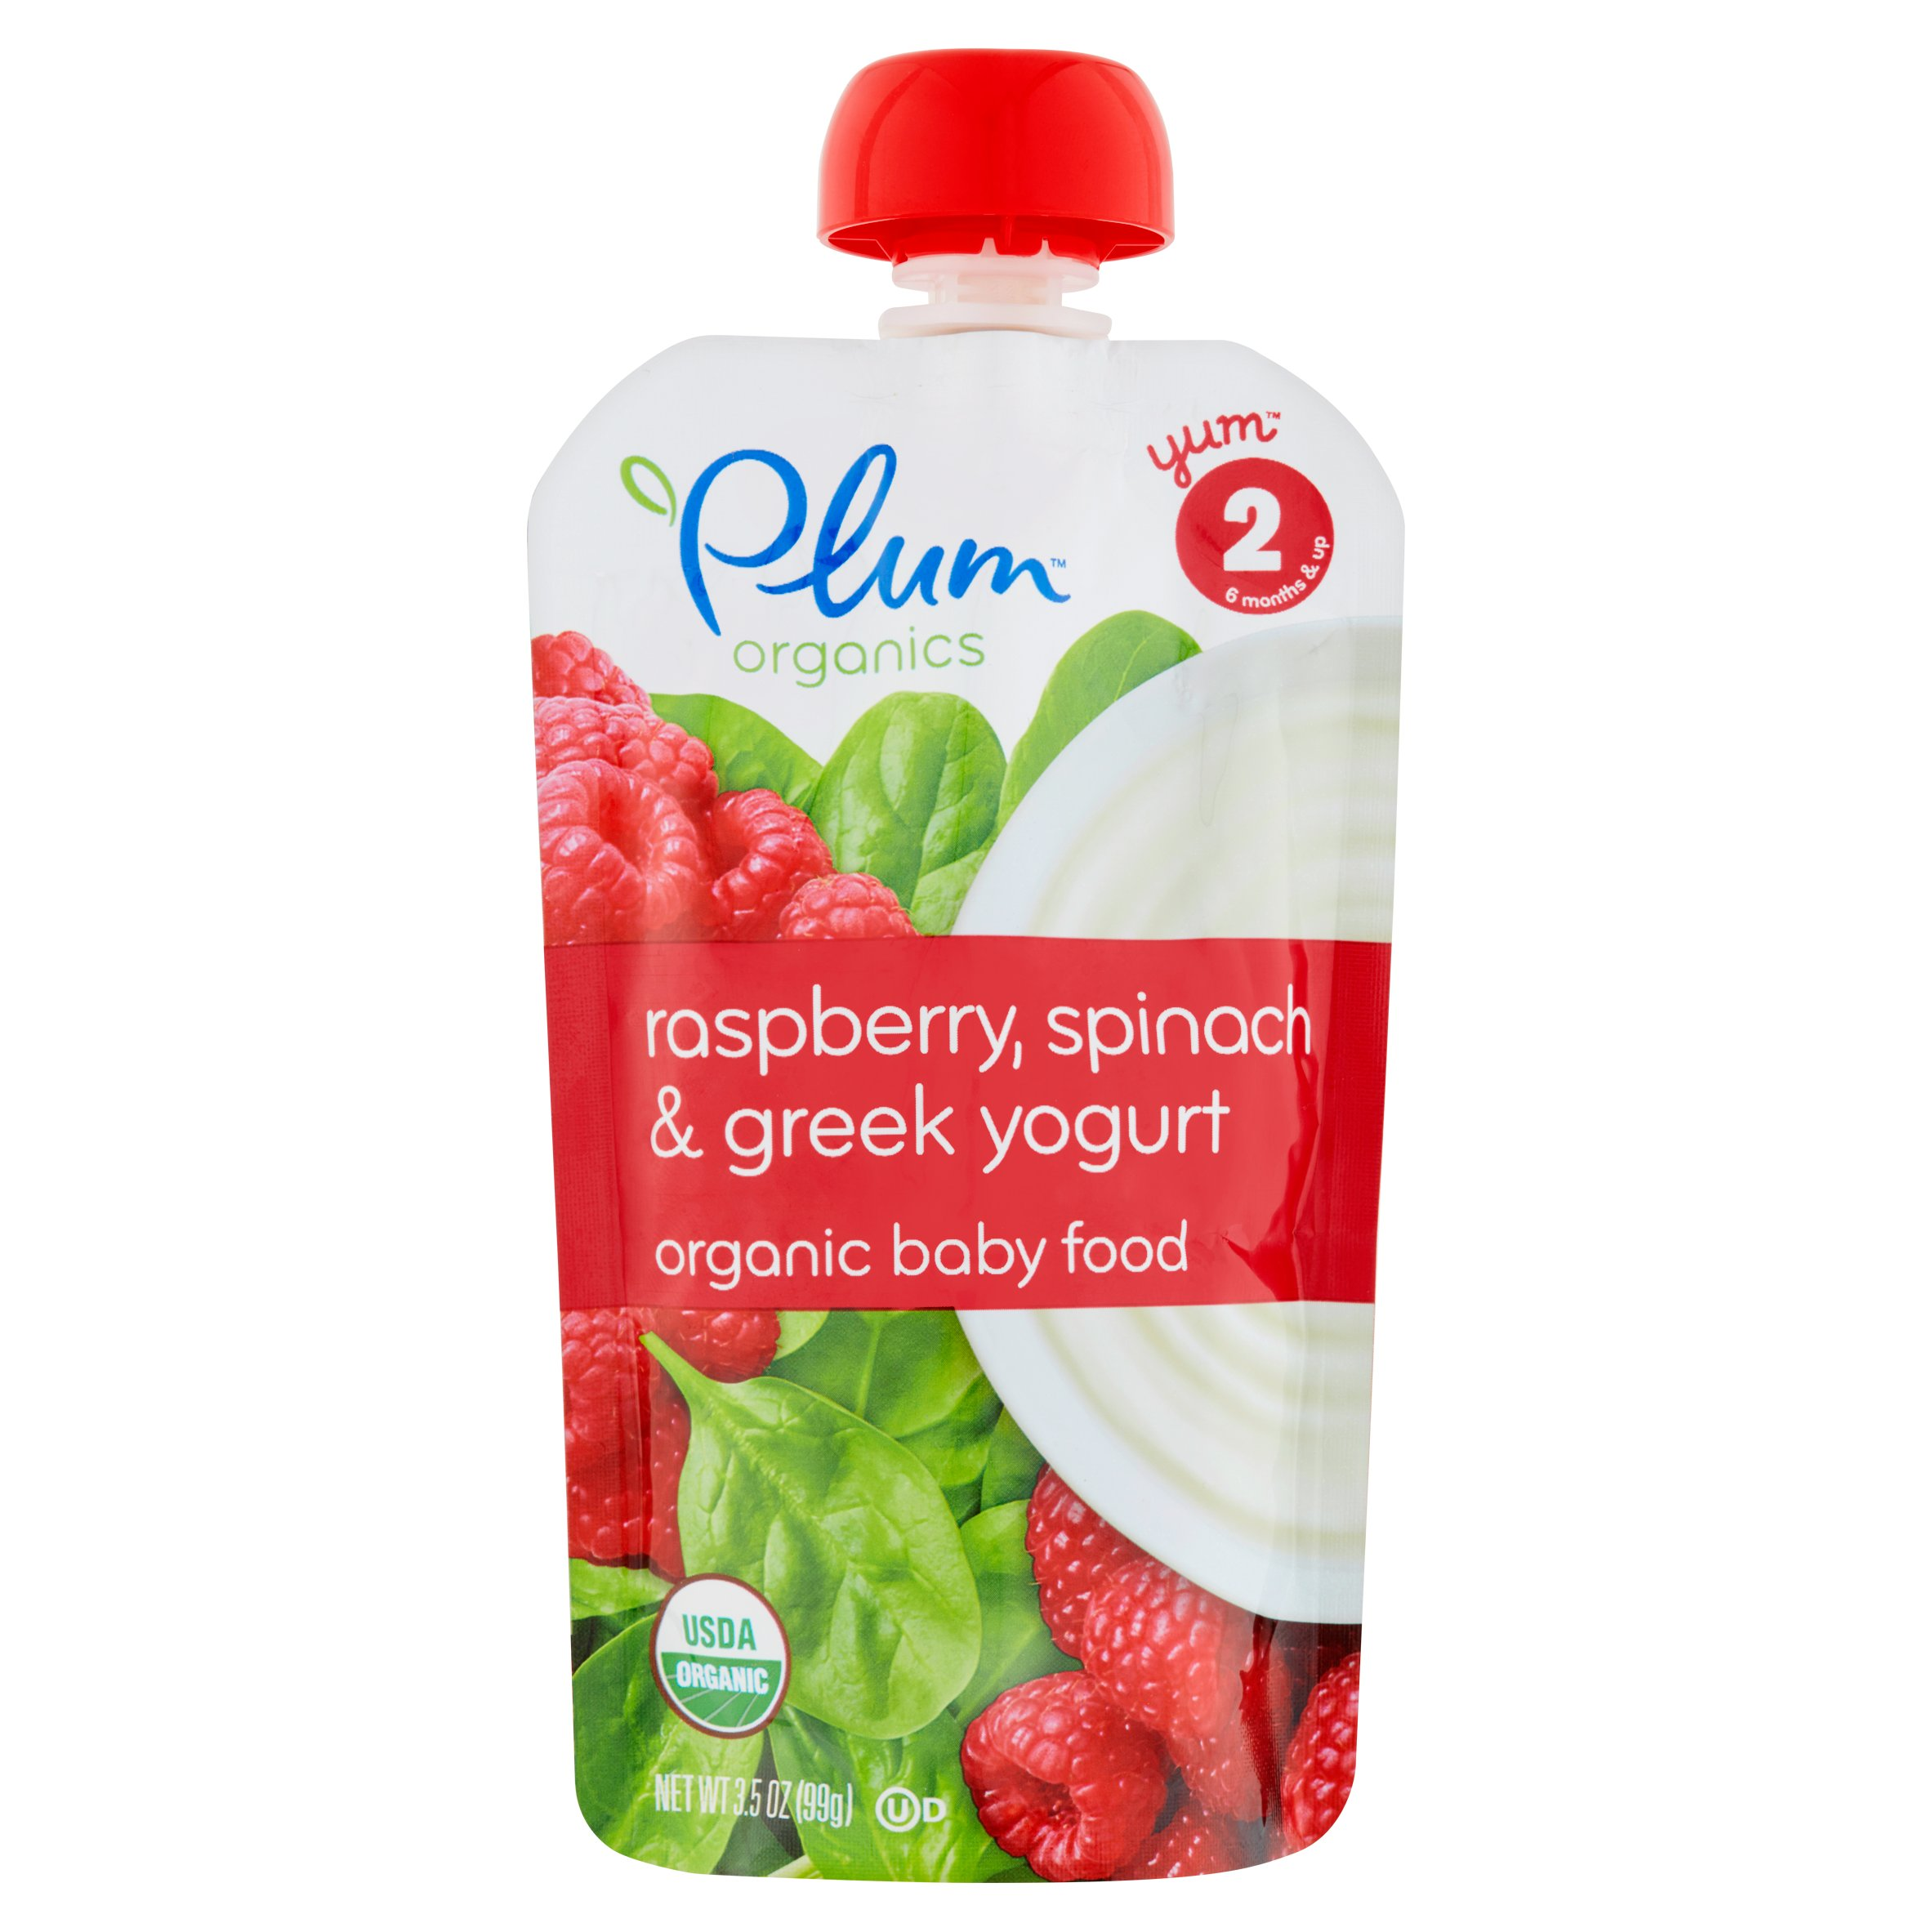 Plum Organics Raspberry, Spinach & Greek Yogurt Organic Baby Food, Stage 2, 6 Months & Up, 3.5 oz